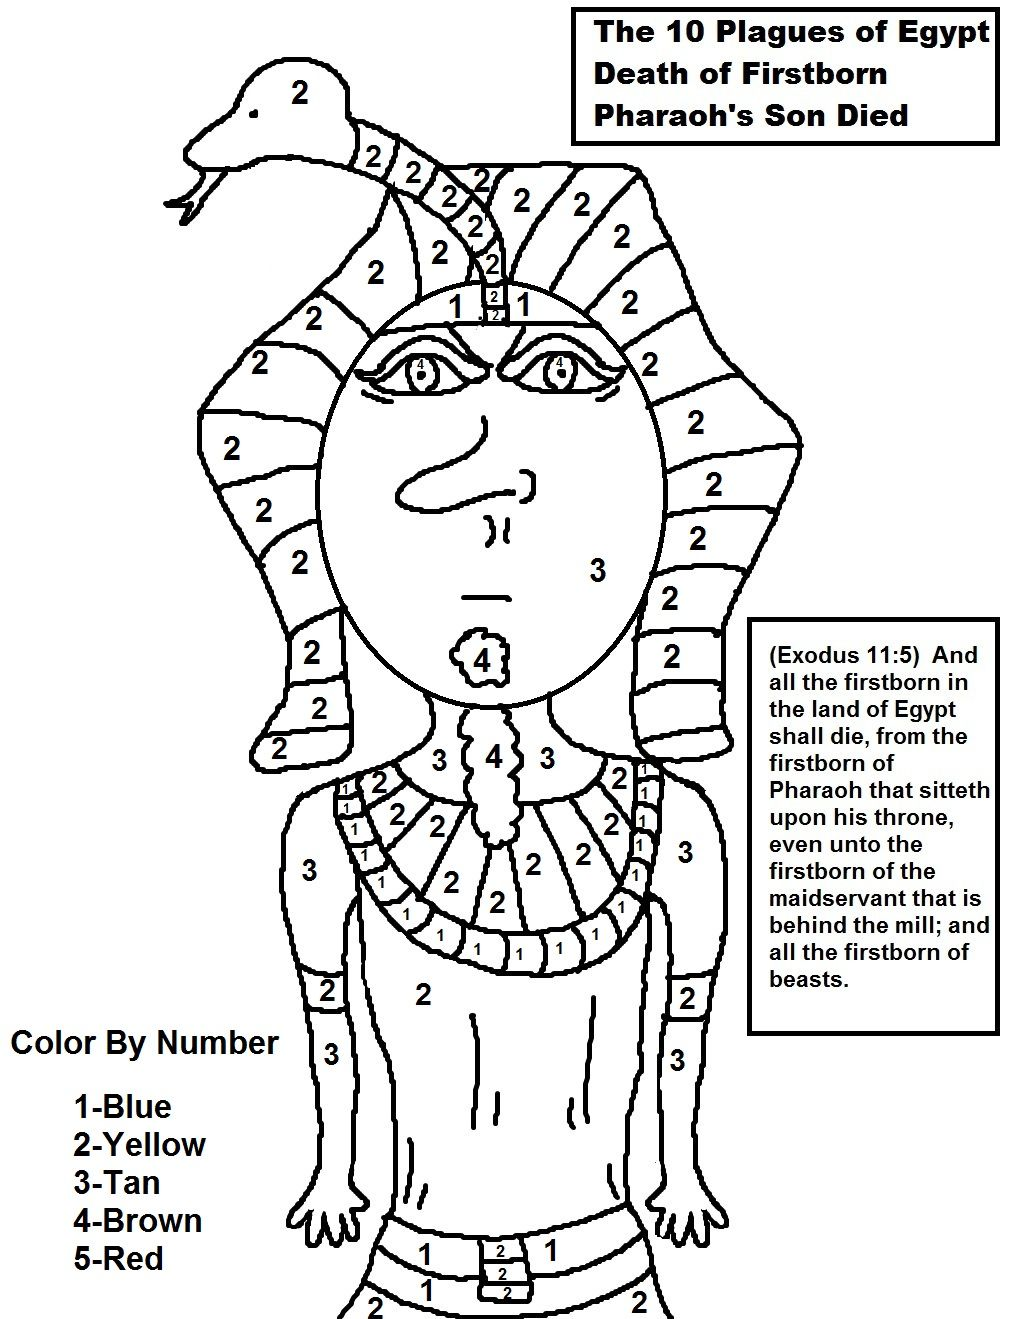 The 10 plagues of Egypt Death of Firstborn Color By Number